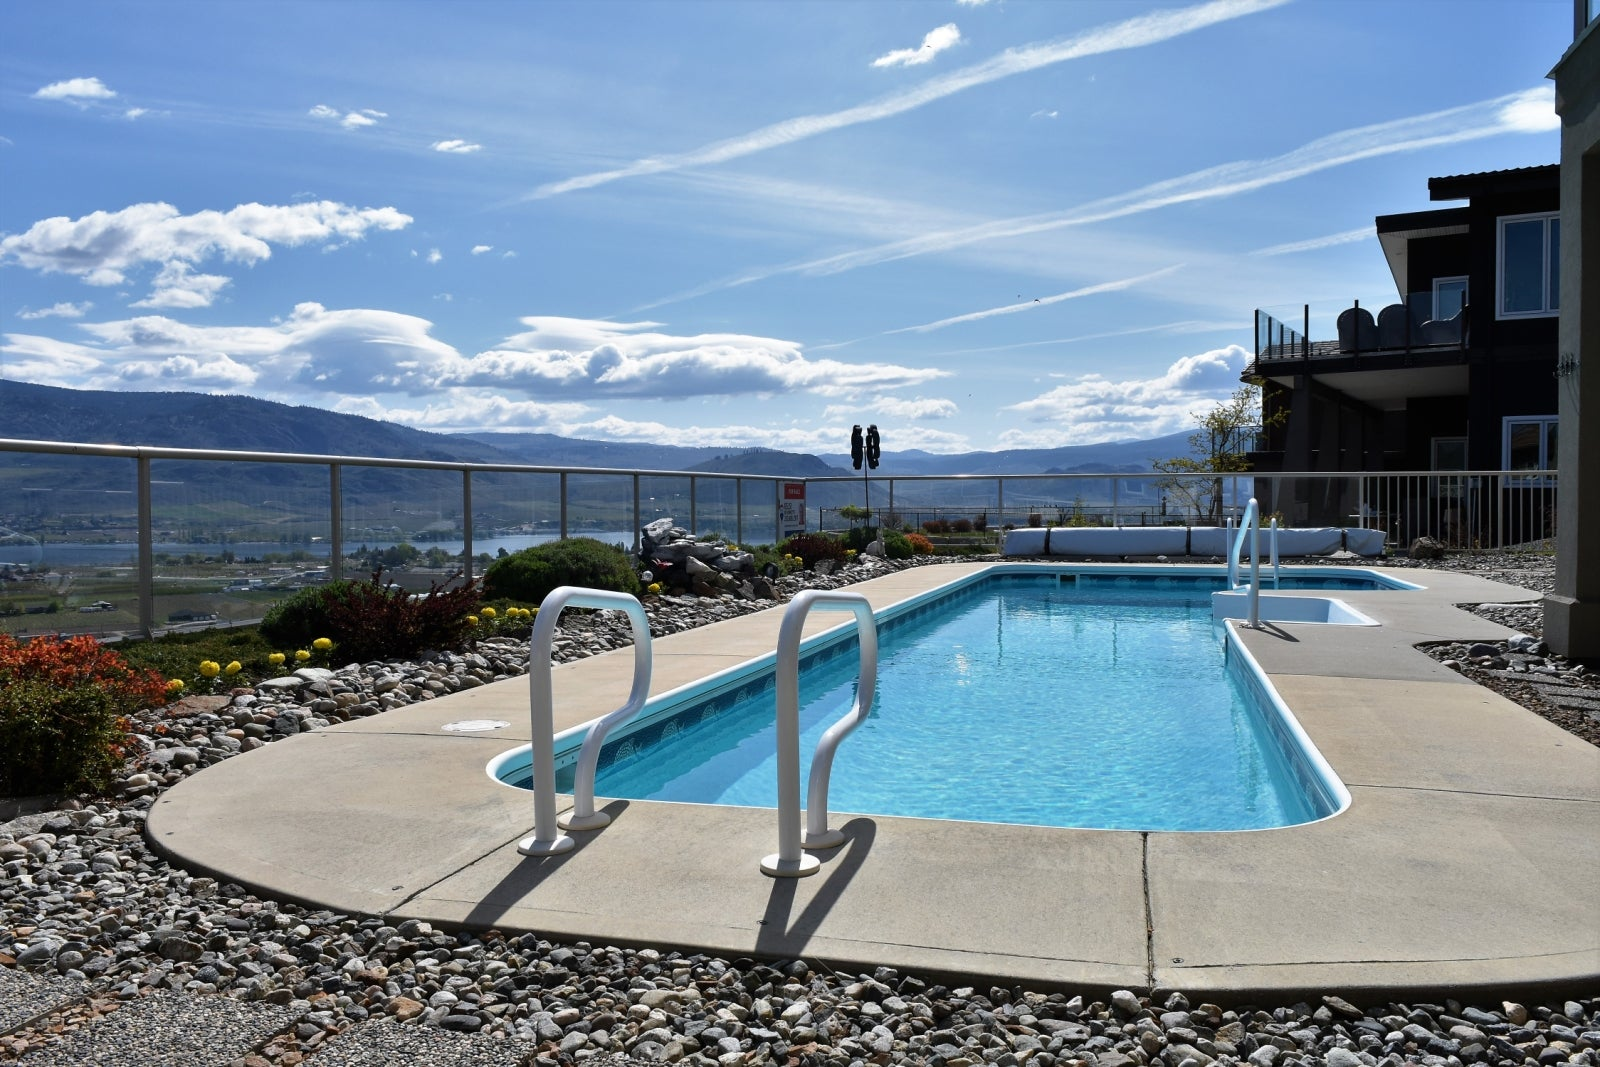 11715 Olympic View Drive - Osoyoos Single Family for sale, 4 Bedrooms (176846) #9